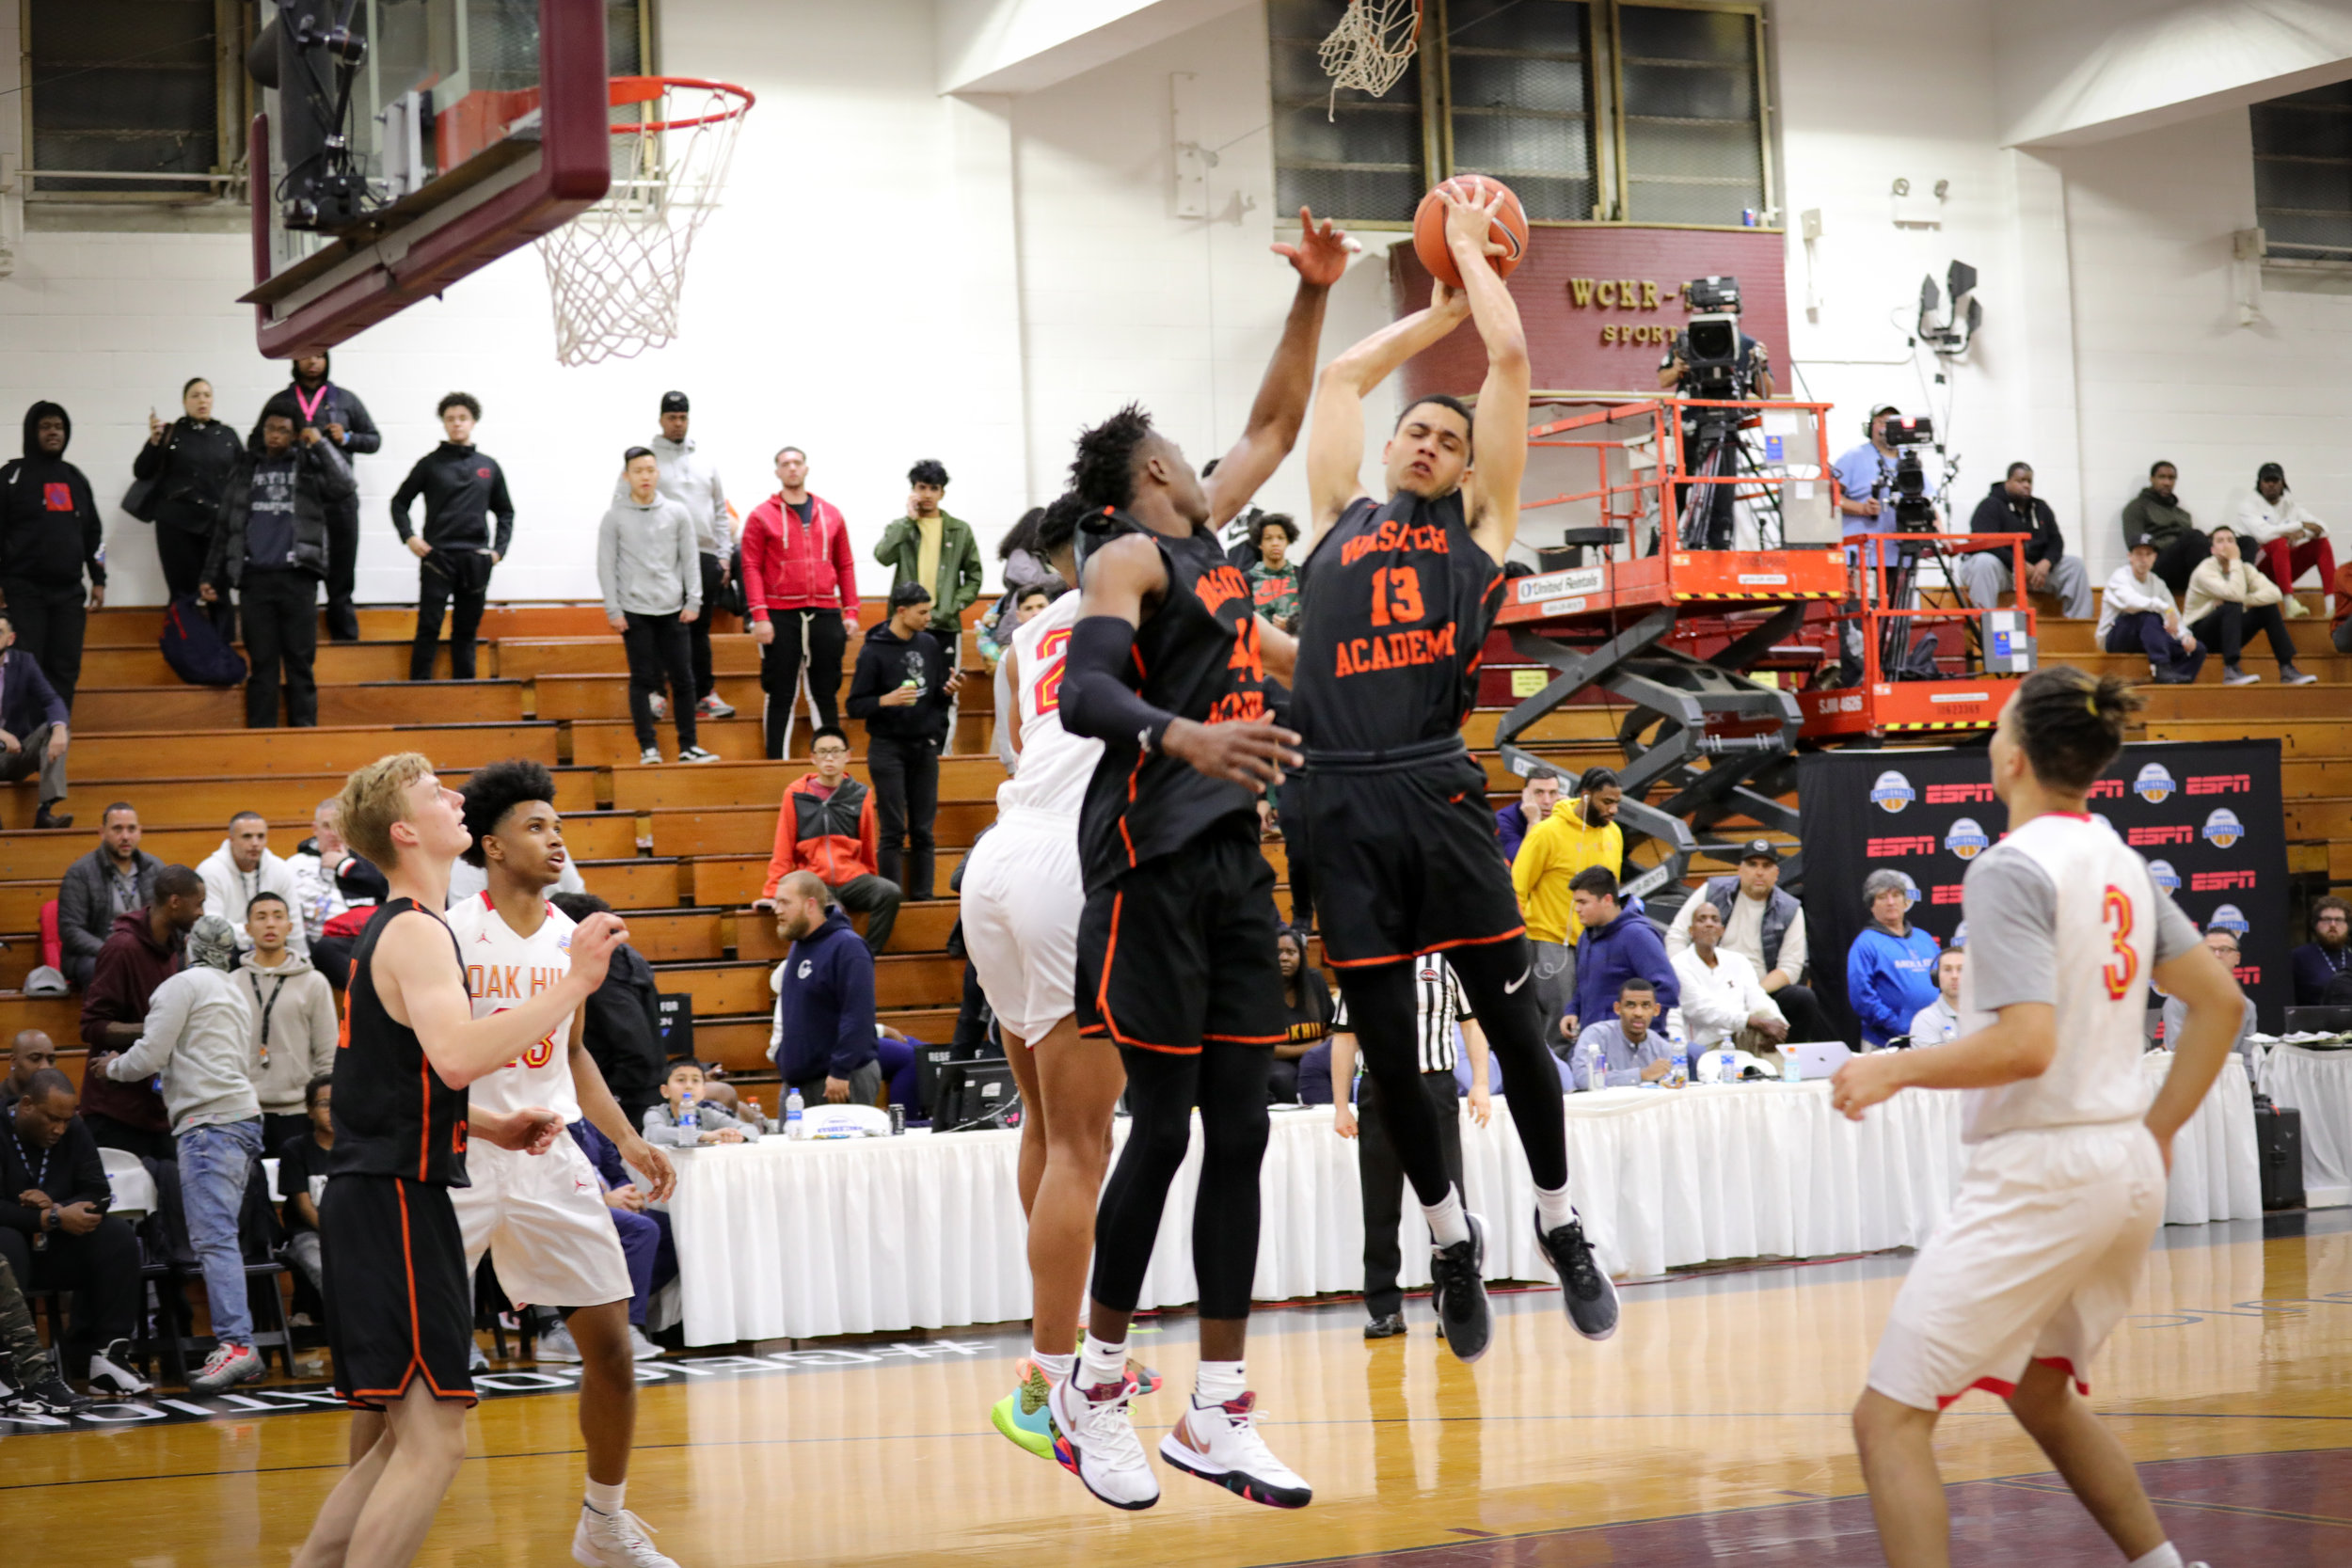 BBall_Geico_Nationals_2019 (59 of 59).jpg